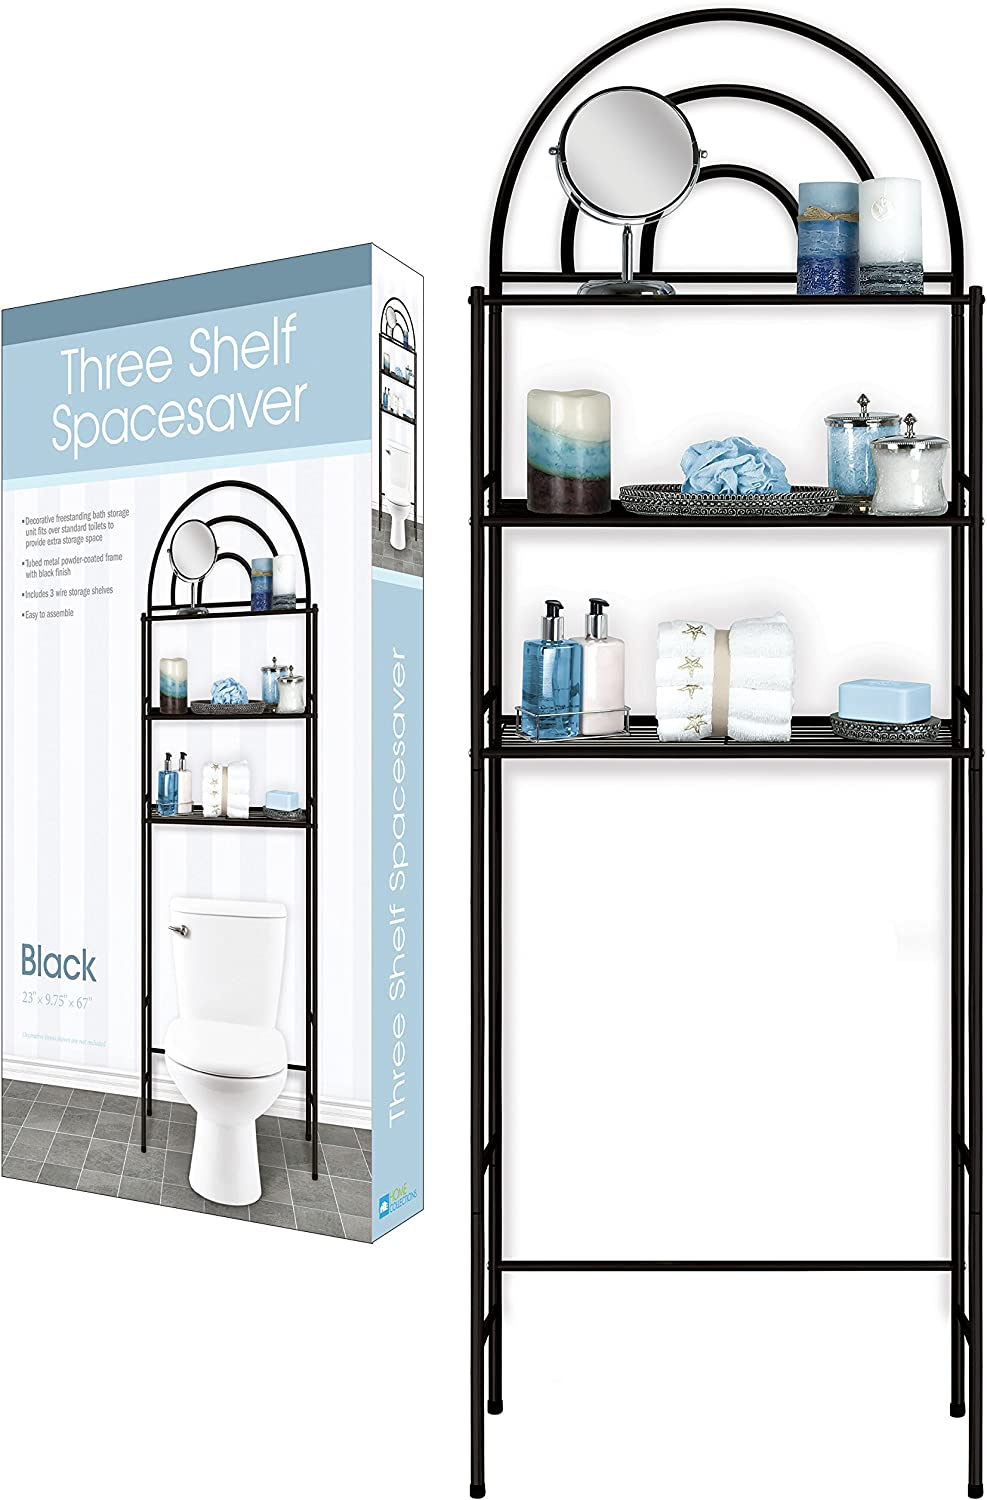 DINY Home Collections 3 Shelf Over The Toilet Spacesaver Easy to Assemble Black Metal